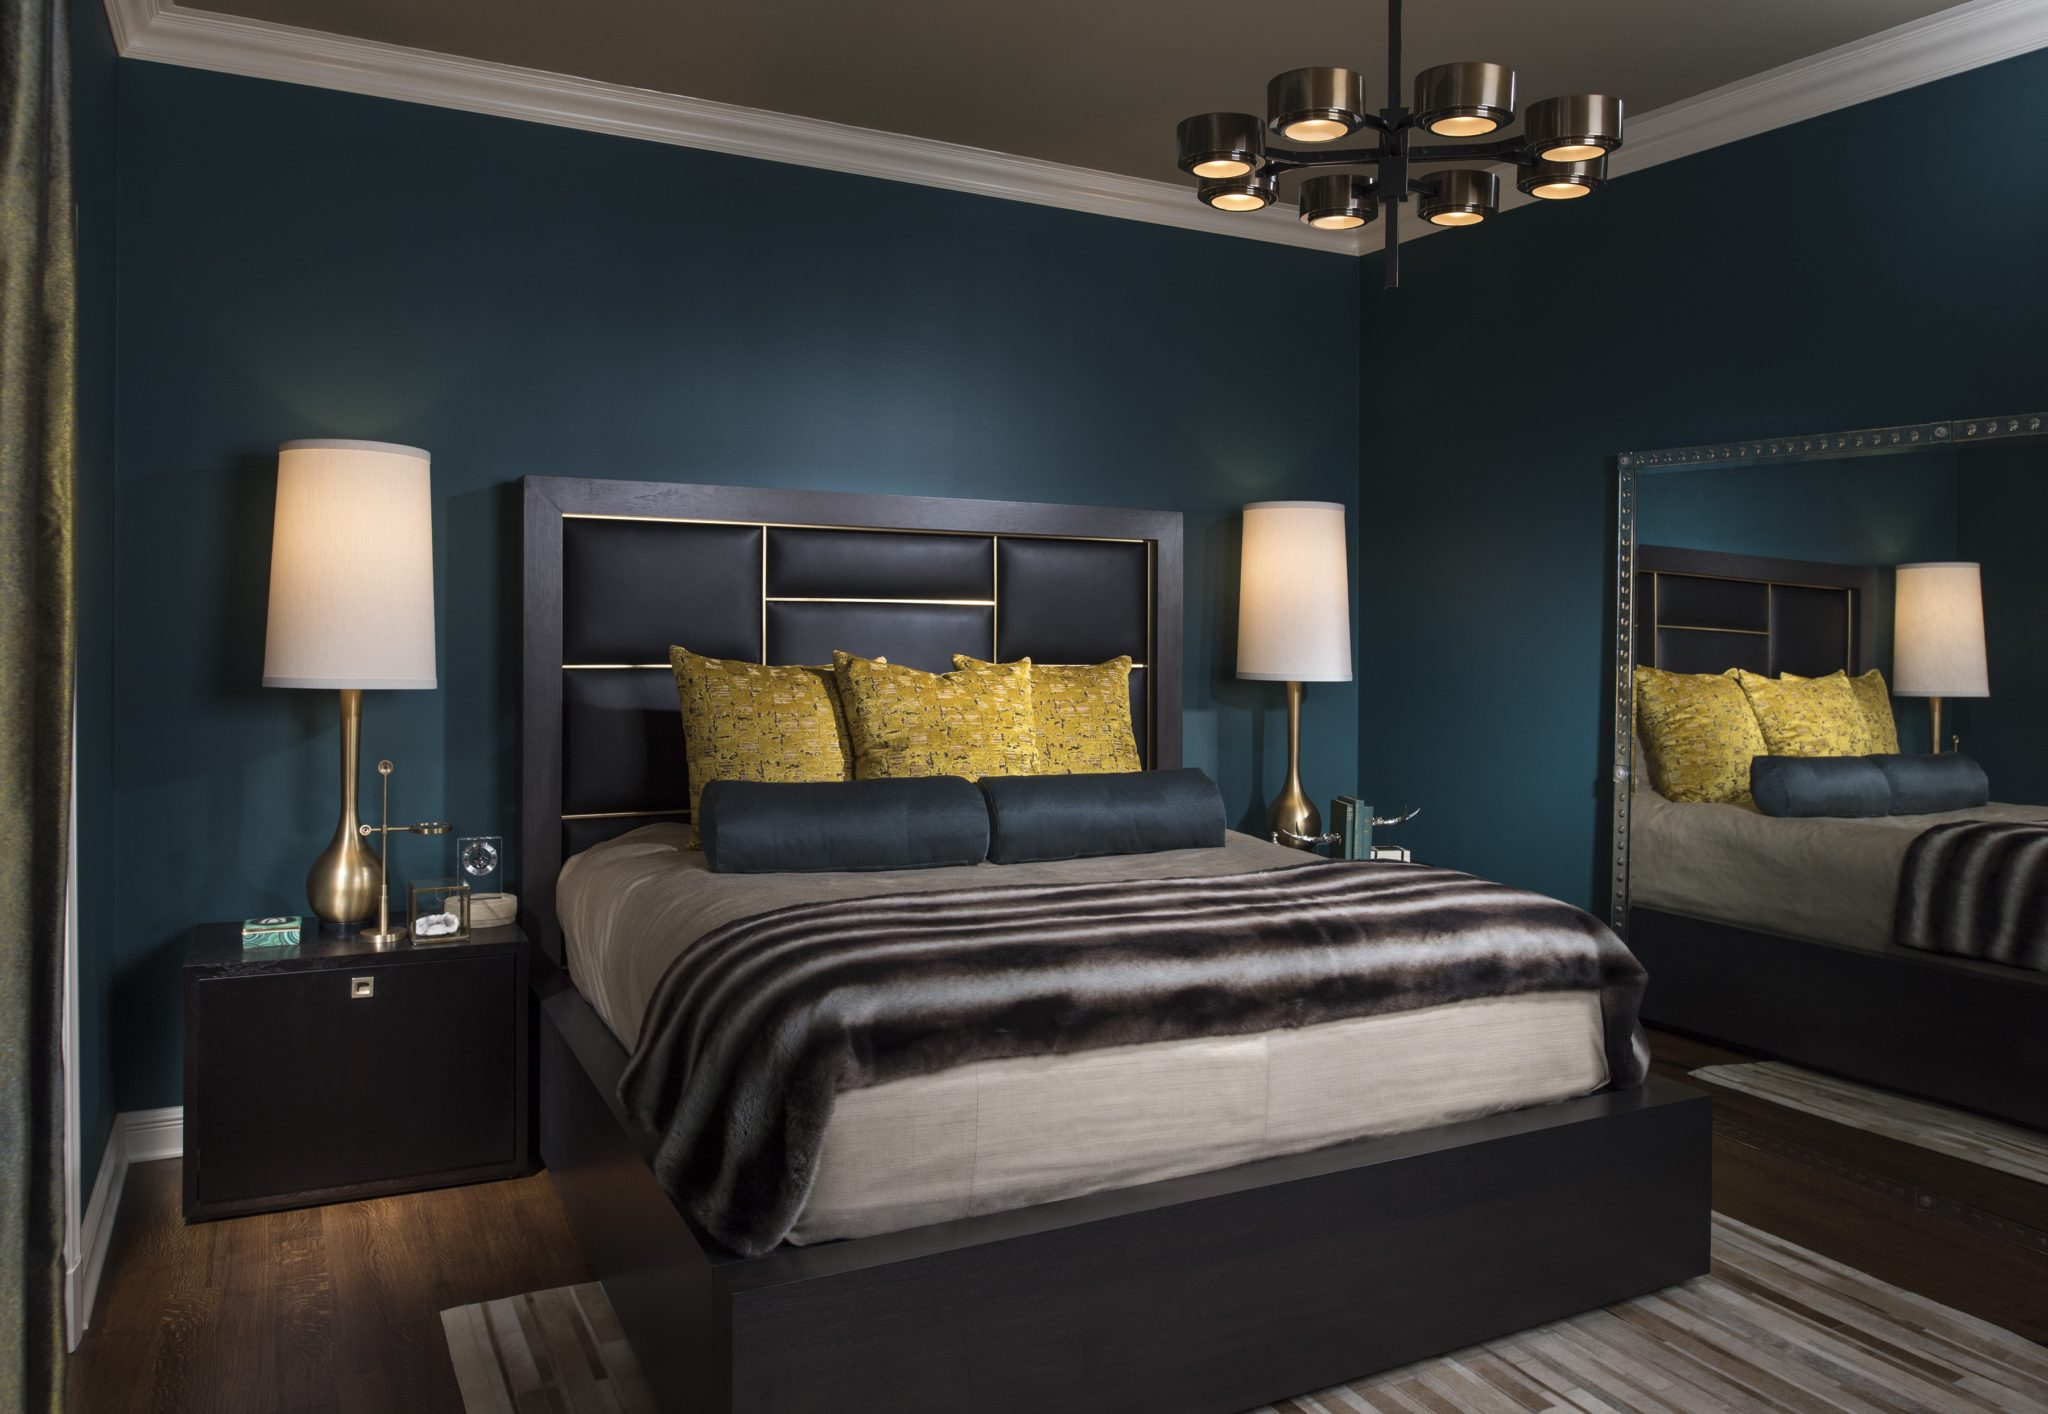 Richly Colored Dark Bedroom Designs - Chairish Blog